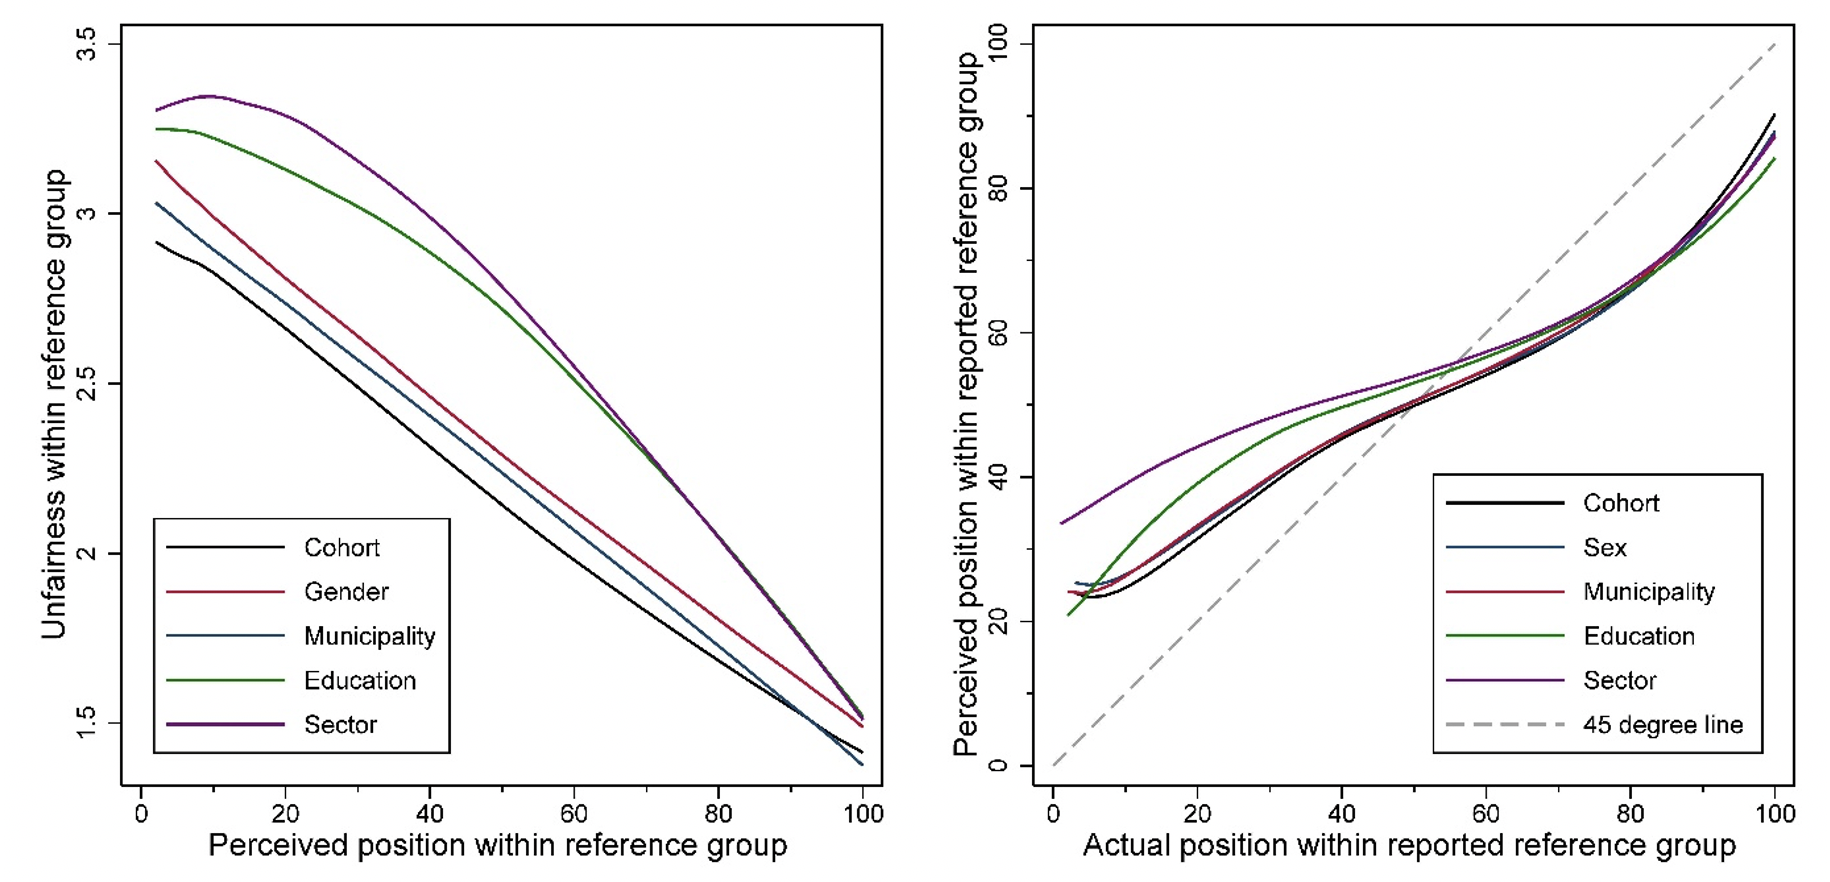 How social position shapes views of fairness 2